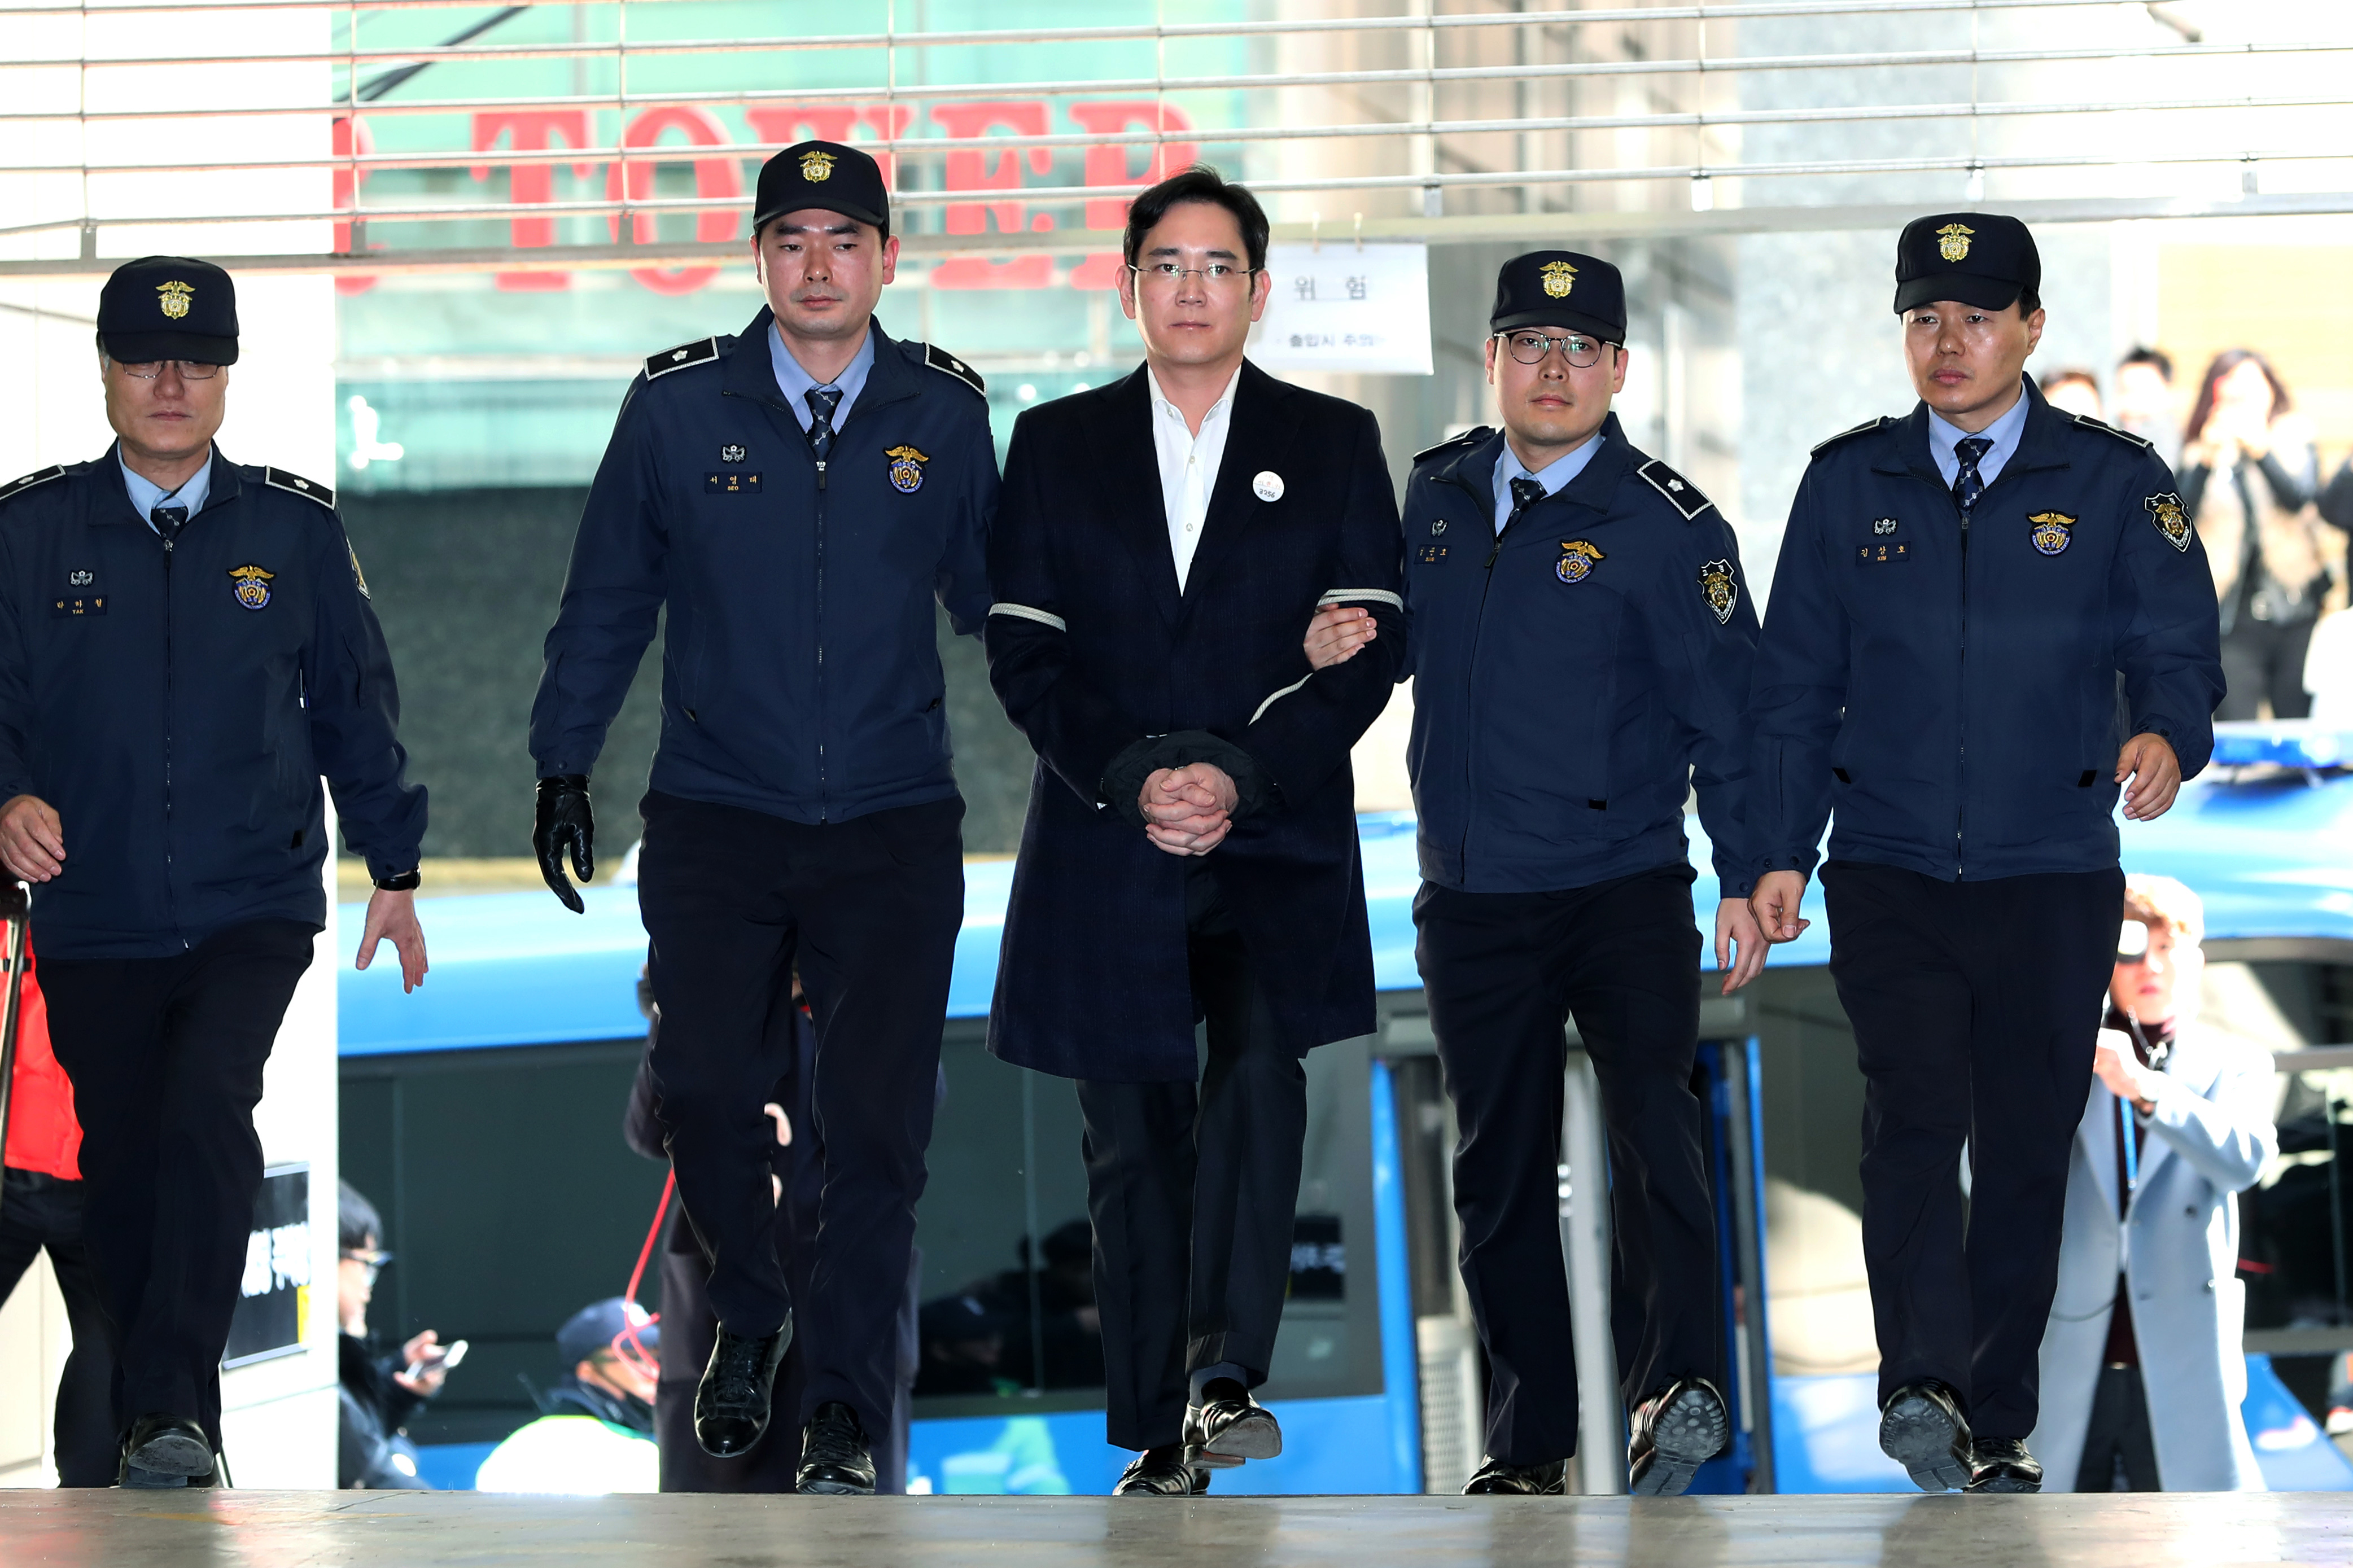 Samsung Vice Chairman Jay Y. Lee Summoned to Special Prosectuor's Office After Arrested On Bribery Allegations